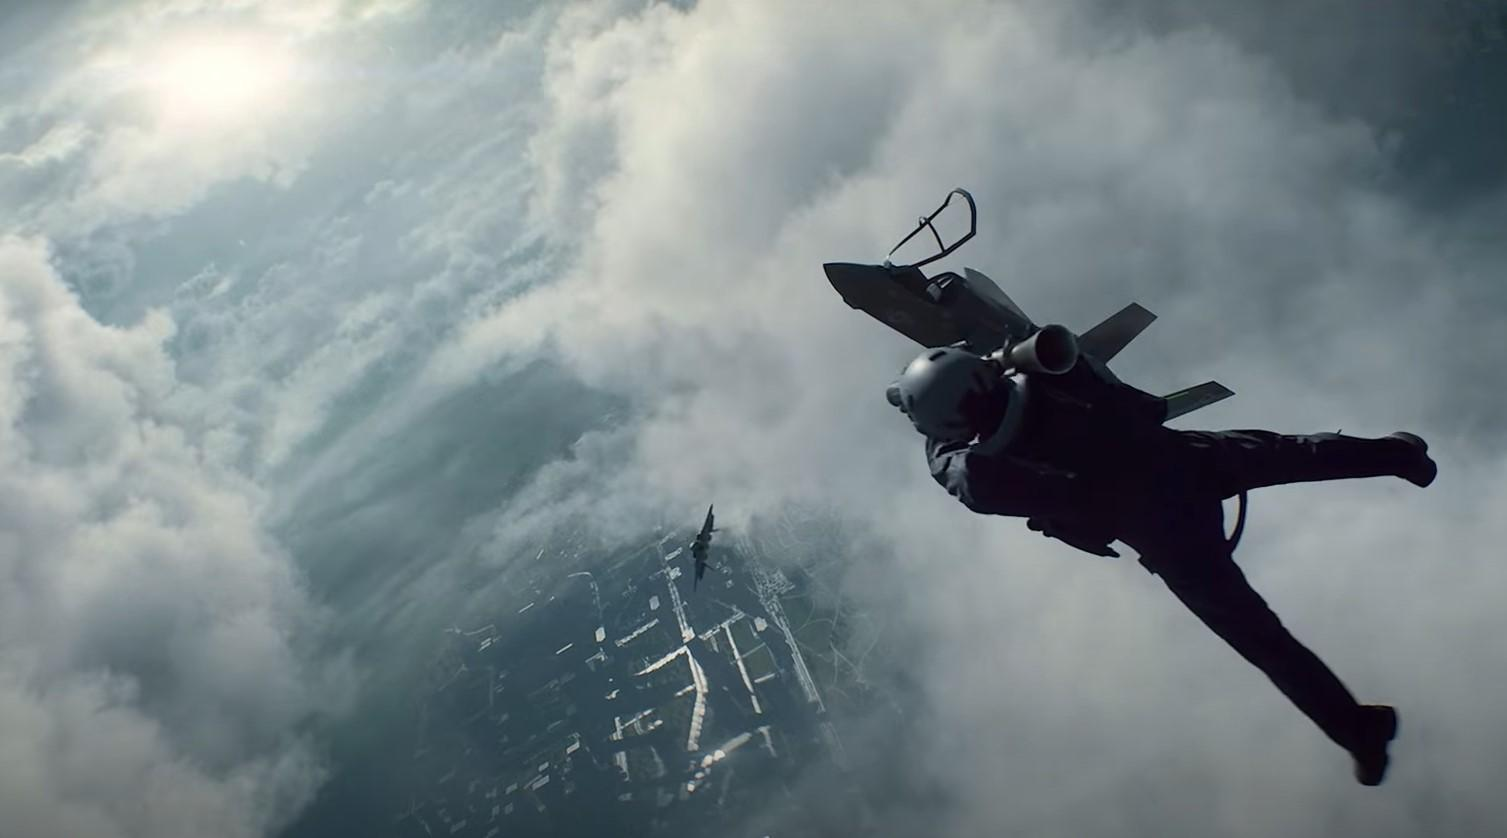 The Battlefield 2042 trailer is filled with moments players will only experience in Battlefield games